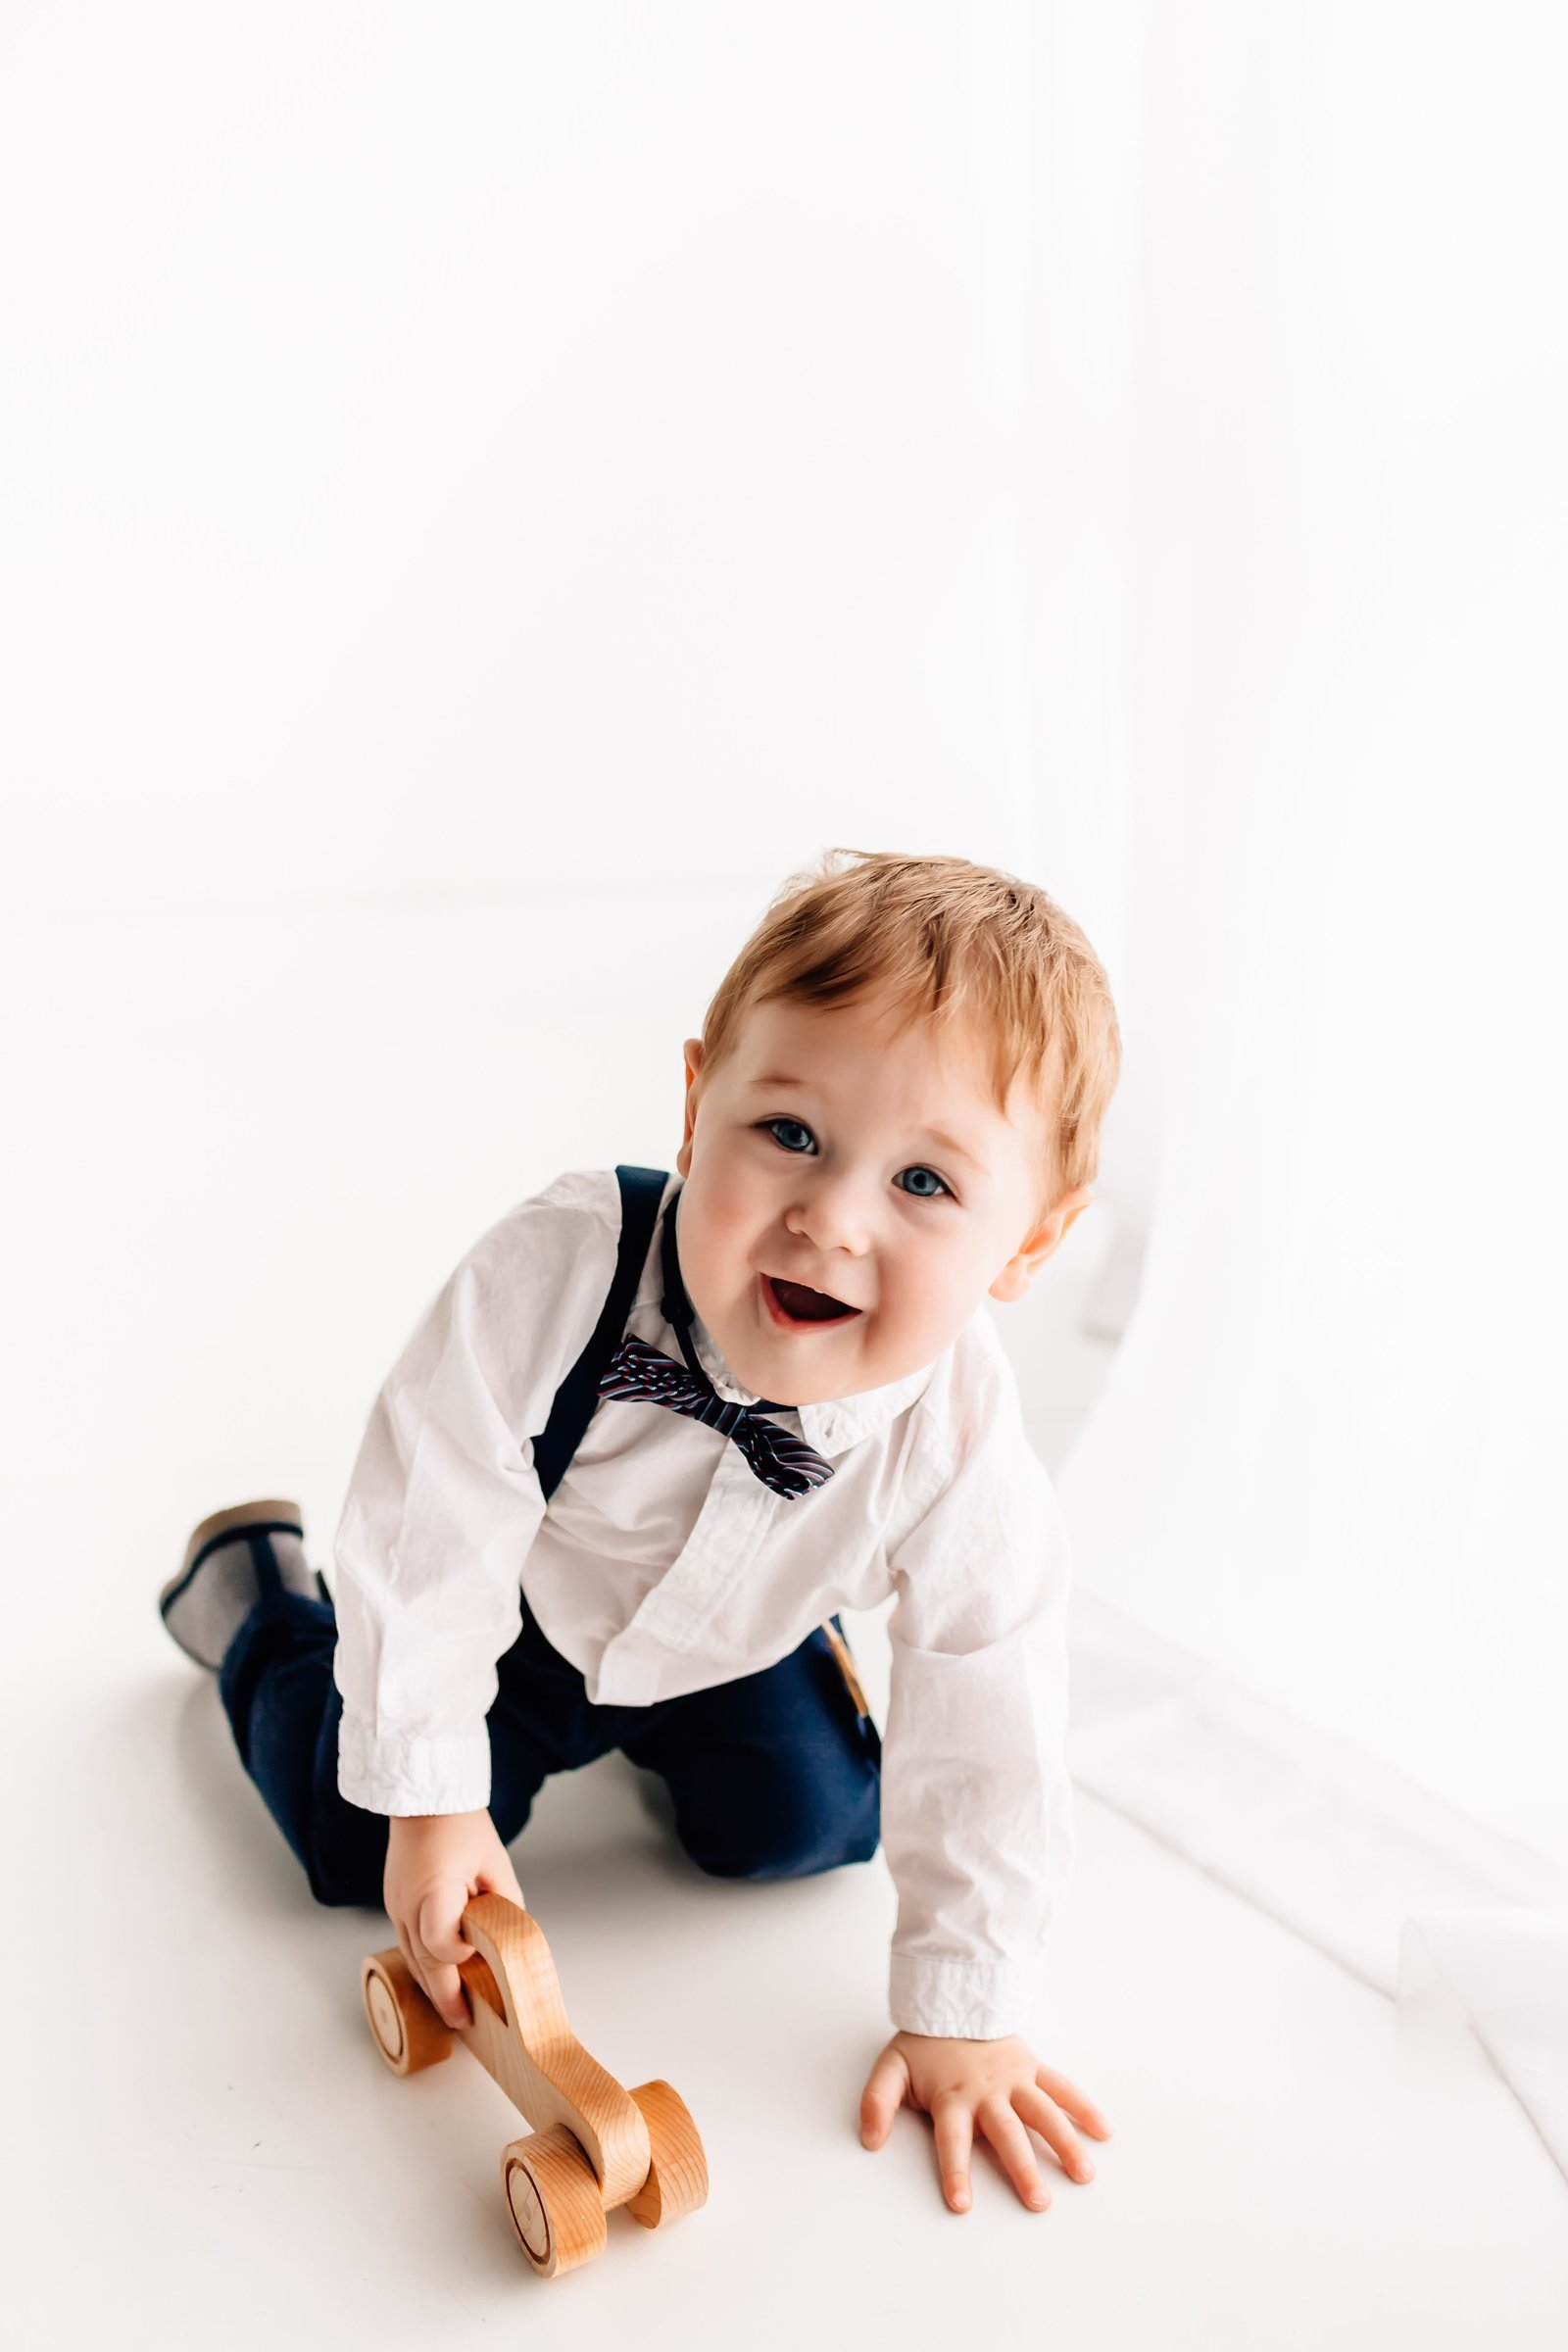 St_Louis_Baby_Photographer_Kelly_Laramore_Photography_56